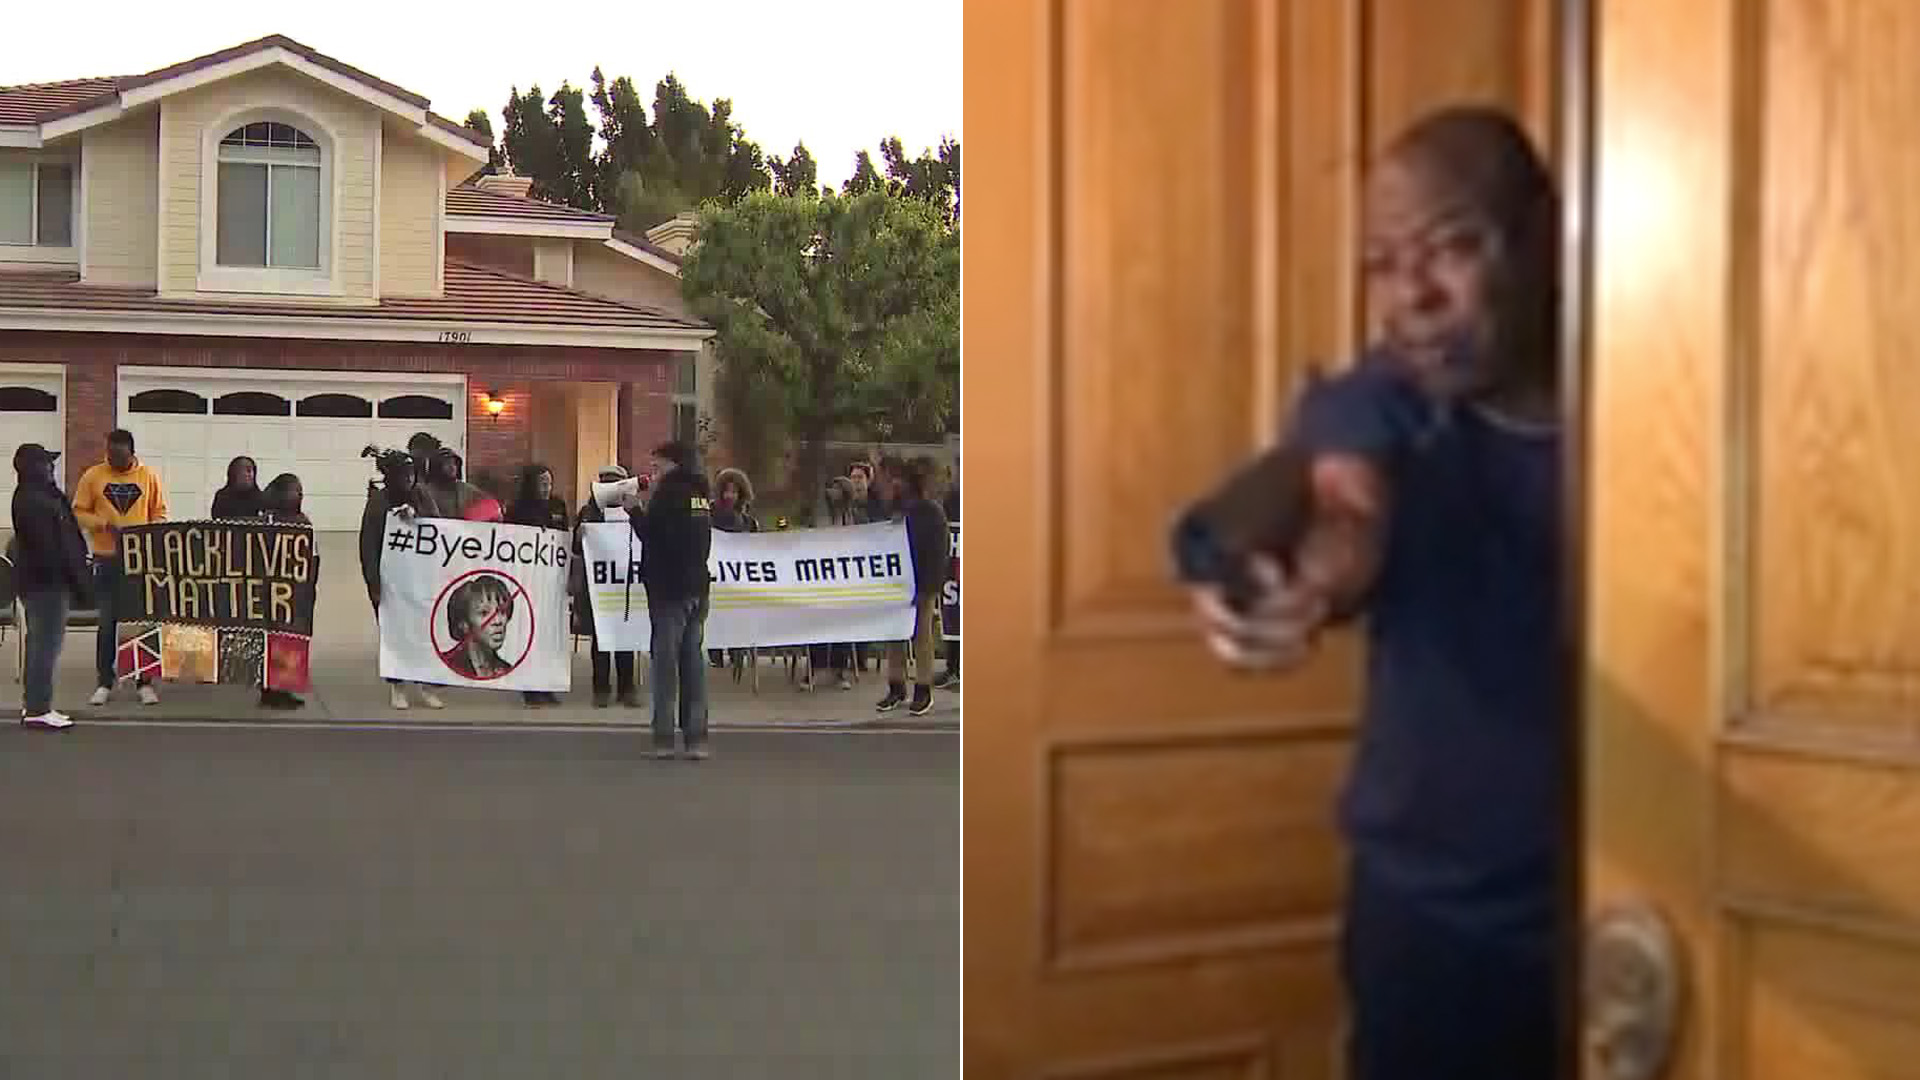 Black Lives Matter activists, left, rally outside Los Angeles County District Attorney Jackie Lacey's home in Granada Hills. On the right, a man holds up a gun while standing at the front door of the home. (KTLA; Melina Abdullah)